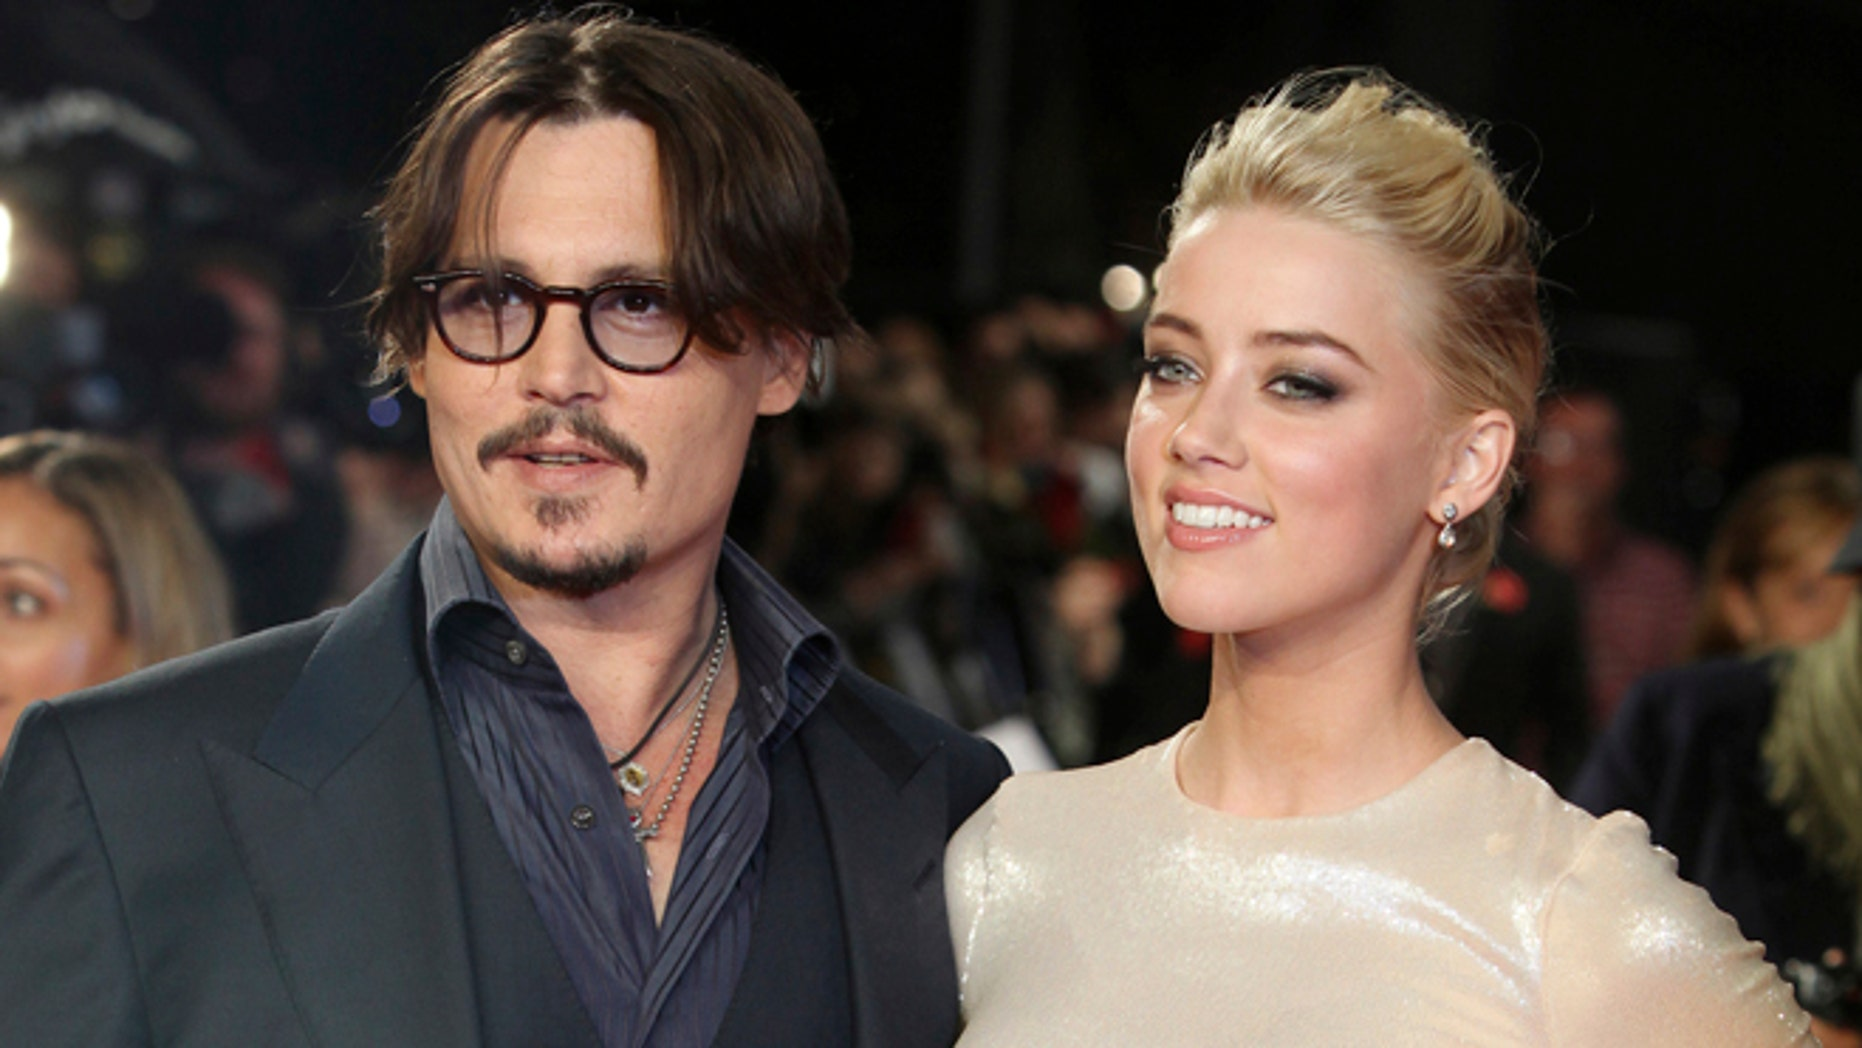 A judge has finalized the divorce of Johnny Depp and Amber Heard.